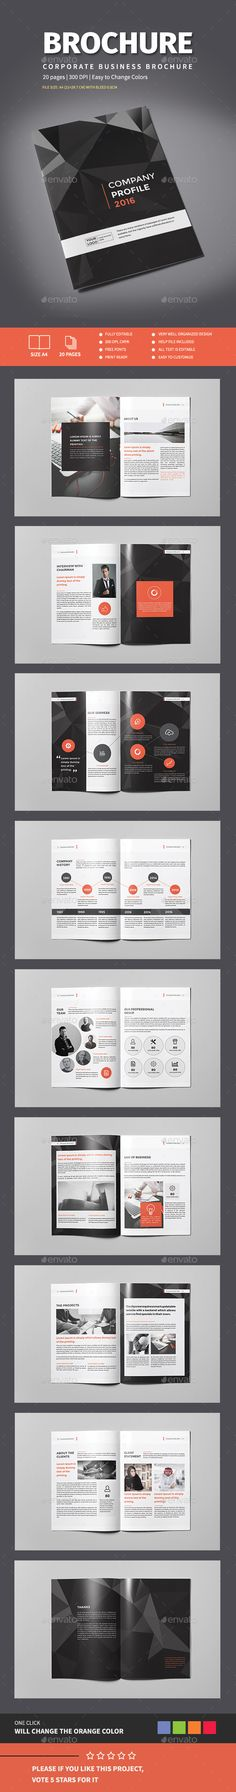 The Company Brochure Template InDesign INDD. Download here: http://graphicriver.net/item/the-company-brochure/14871180?ref=ksioks